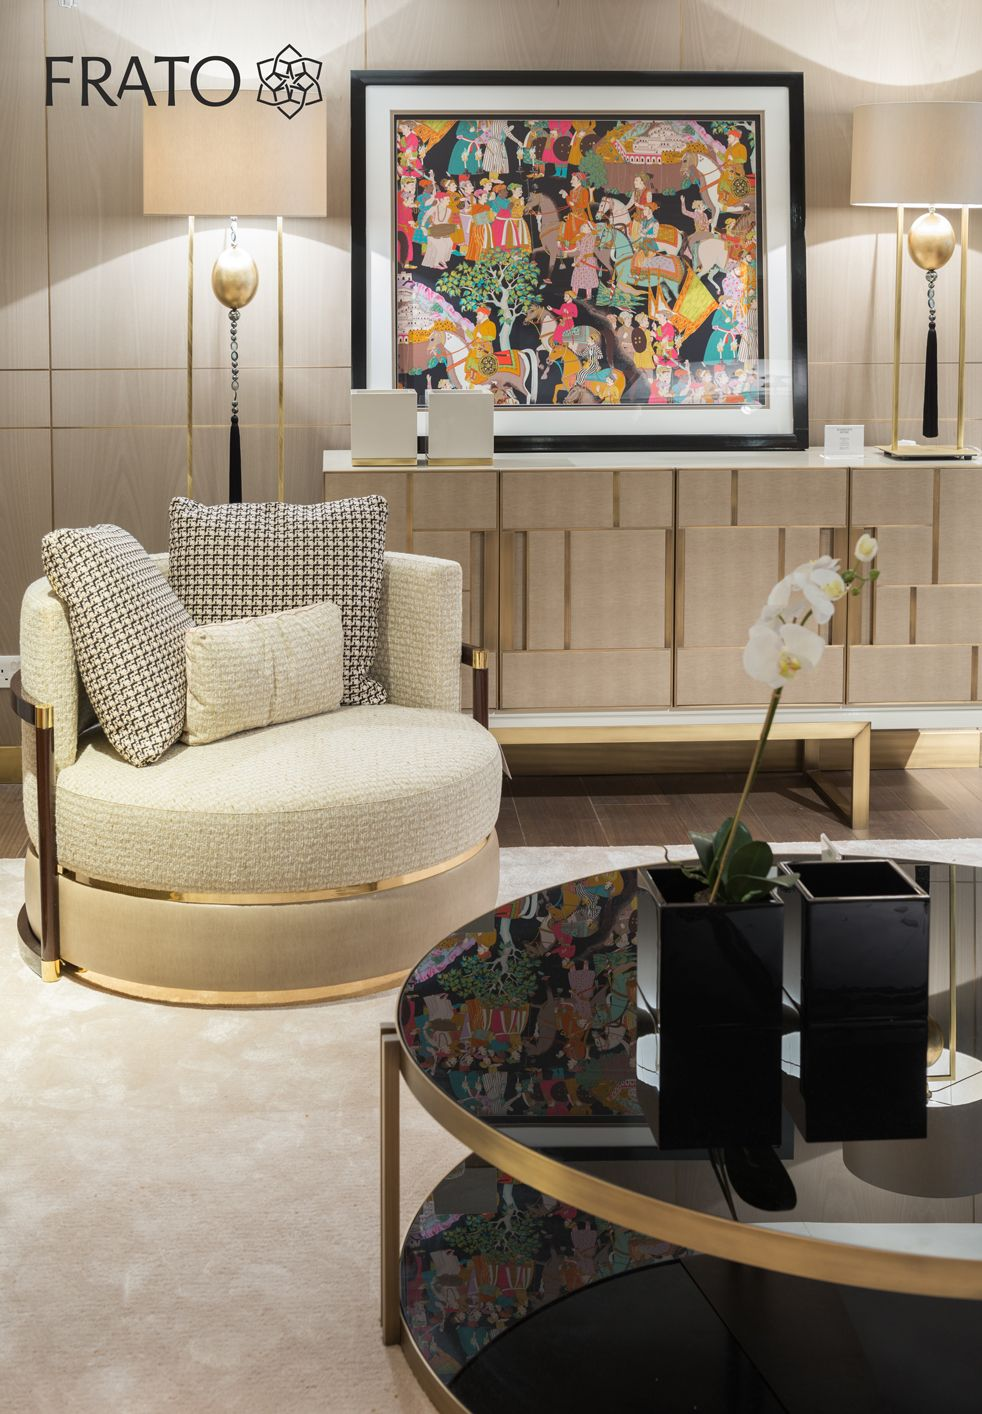 Frato at Harrods Globally inspired interior lifestyle concept